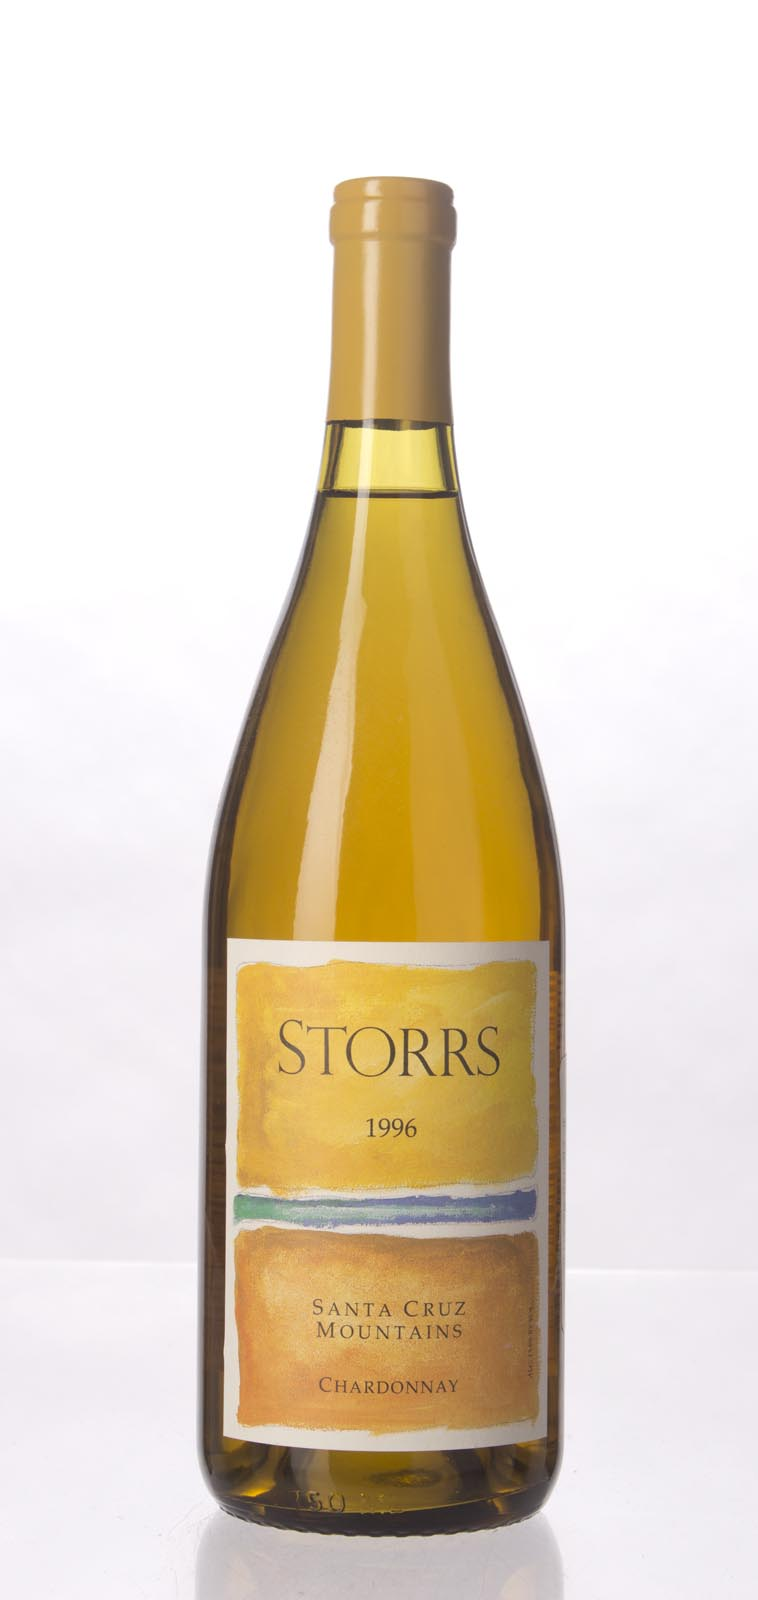 Storrs Chardonnay Santa Cruz Mountains 1996, 750mL () from The BPW - Merchants of rare and fine wines.